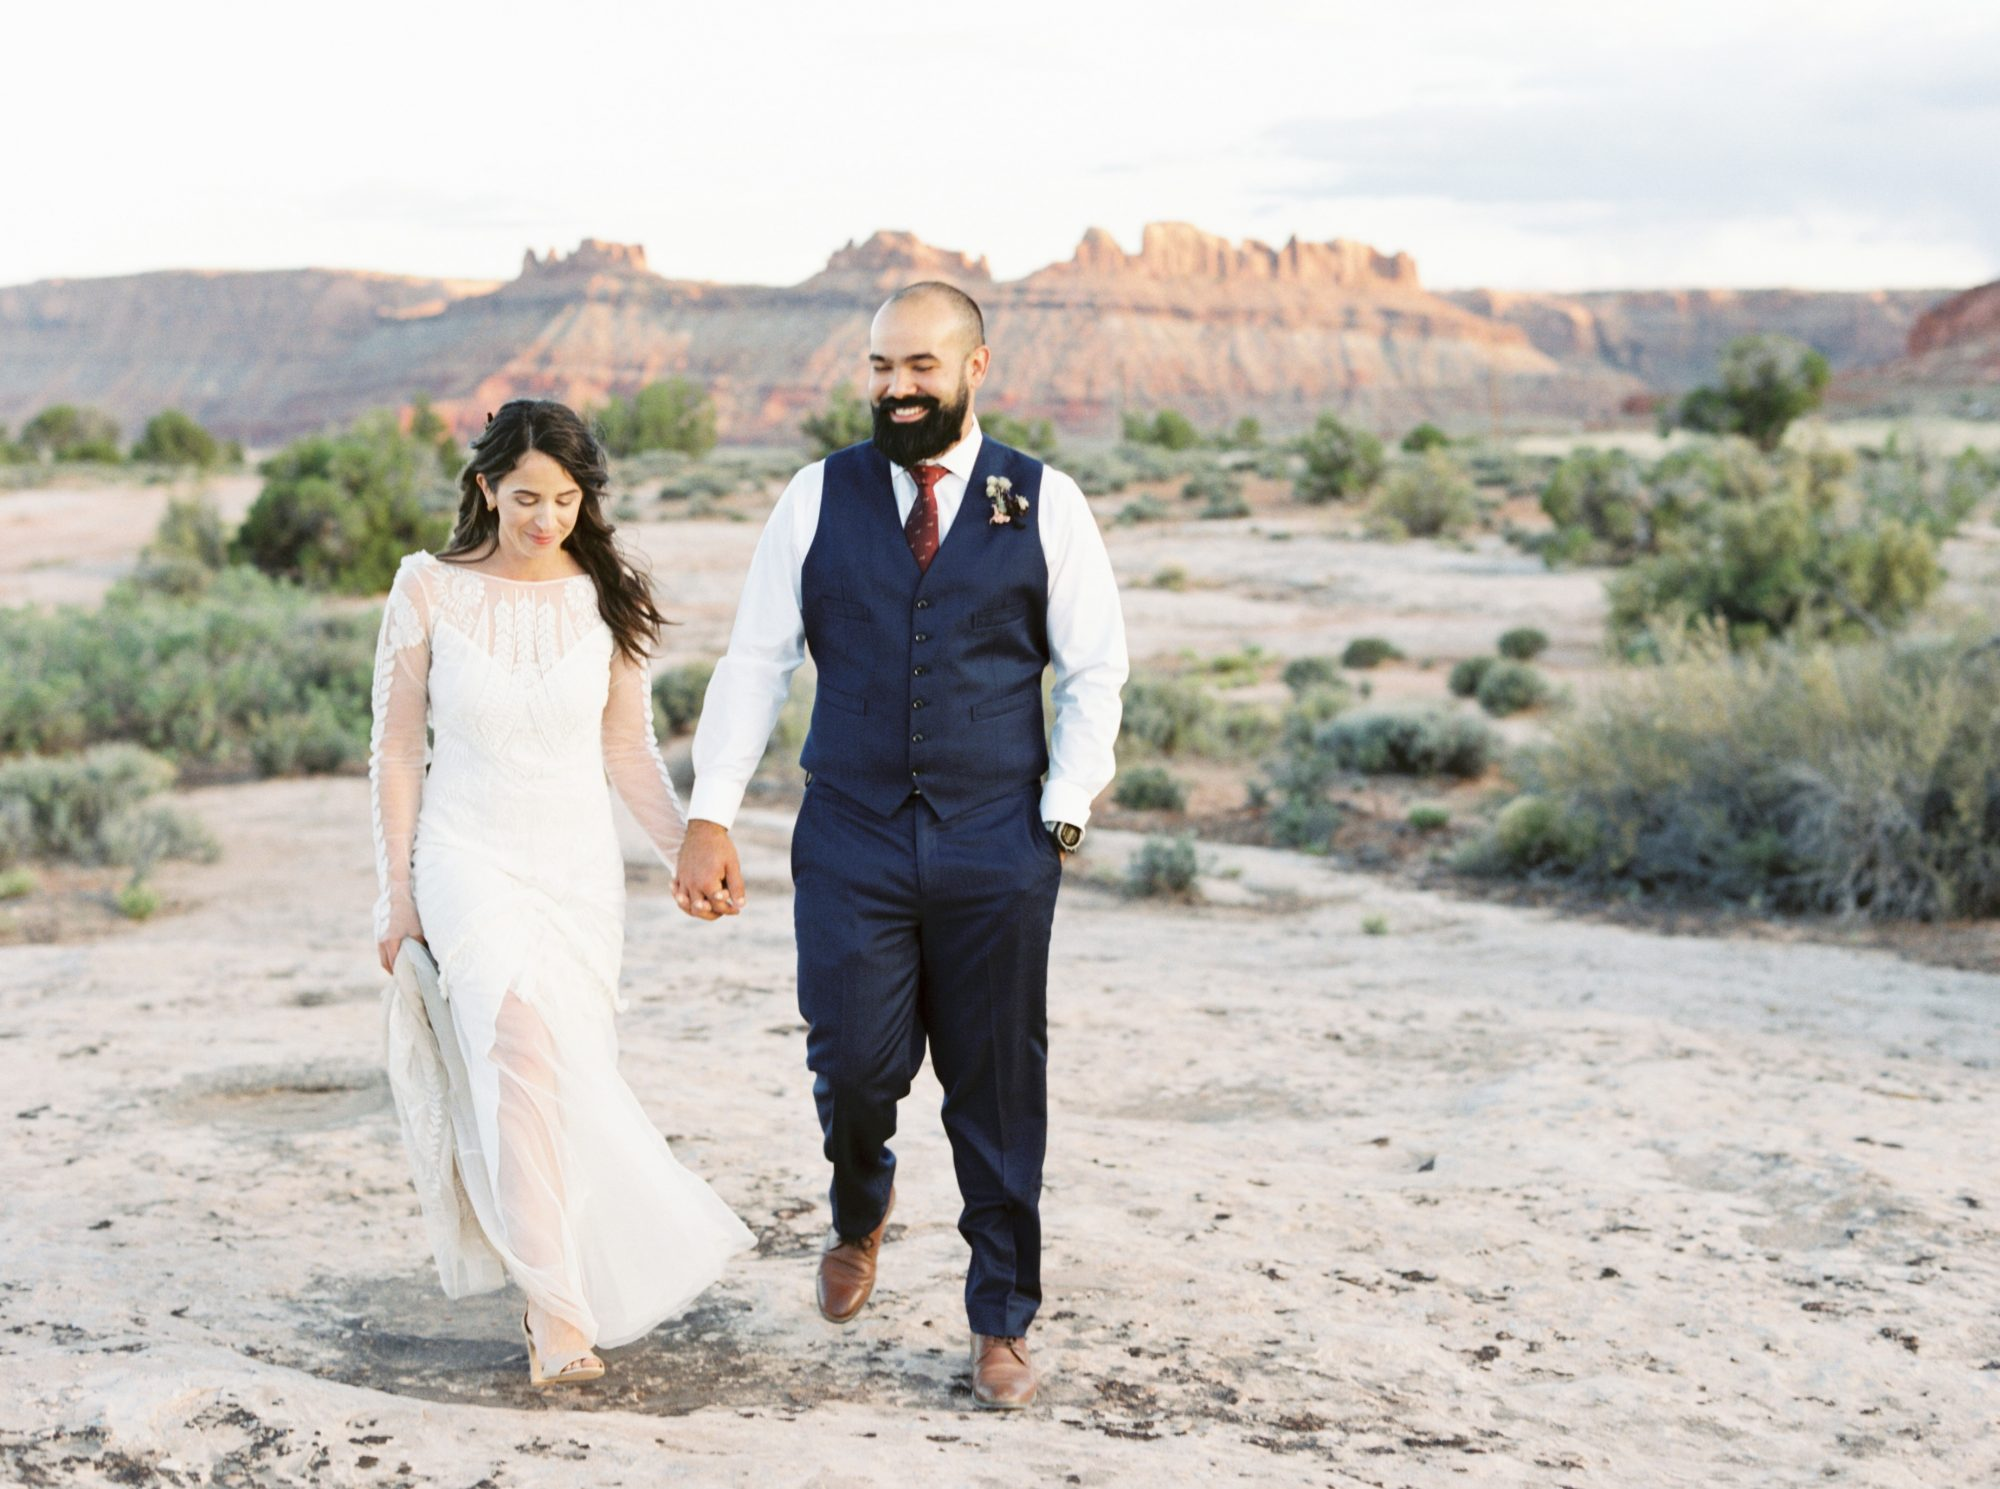 jeanette david wedding desert couple walking